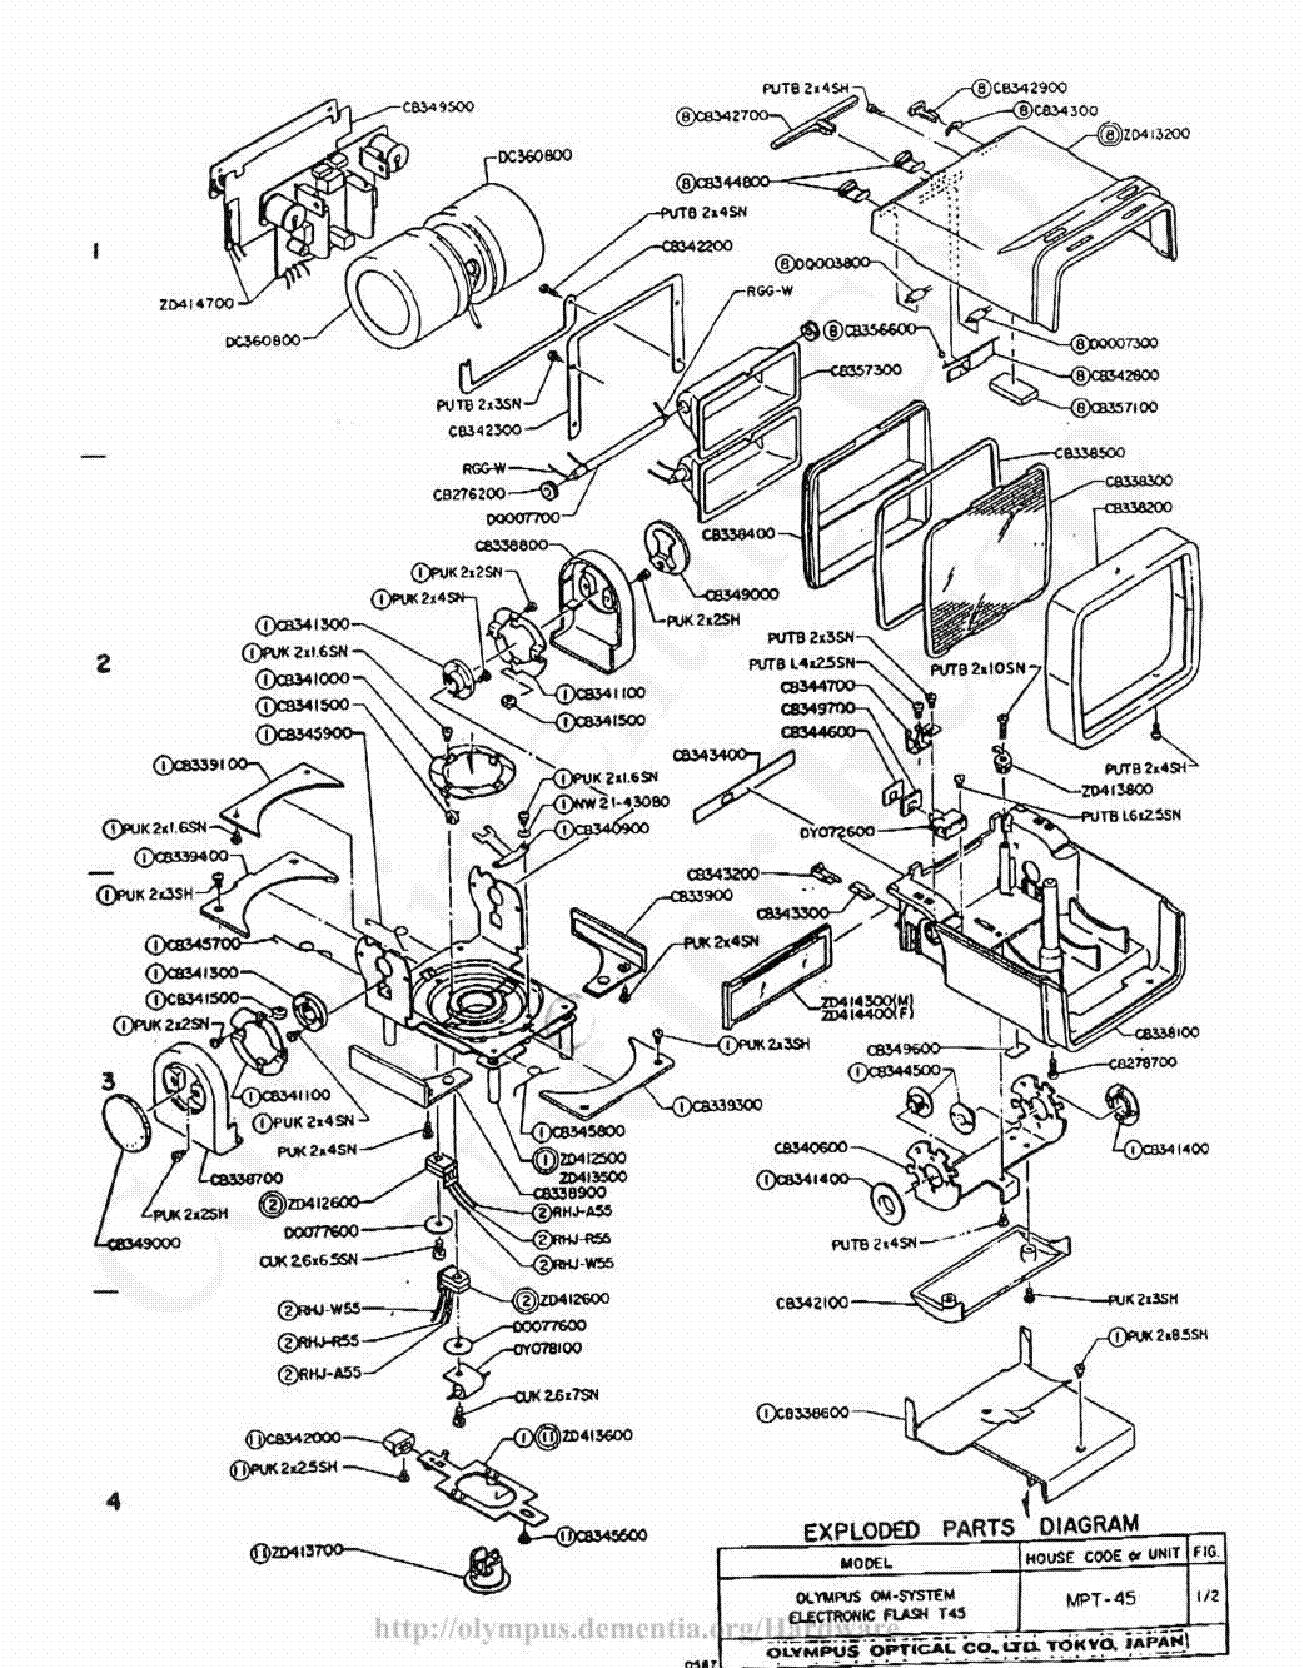 Olympus T 45 Exploded Parts Diagram Service Manual